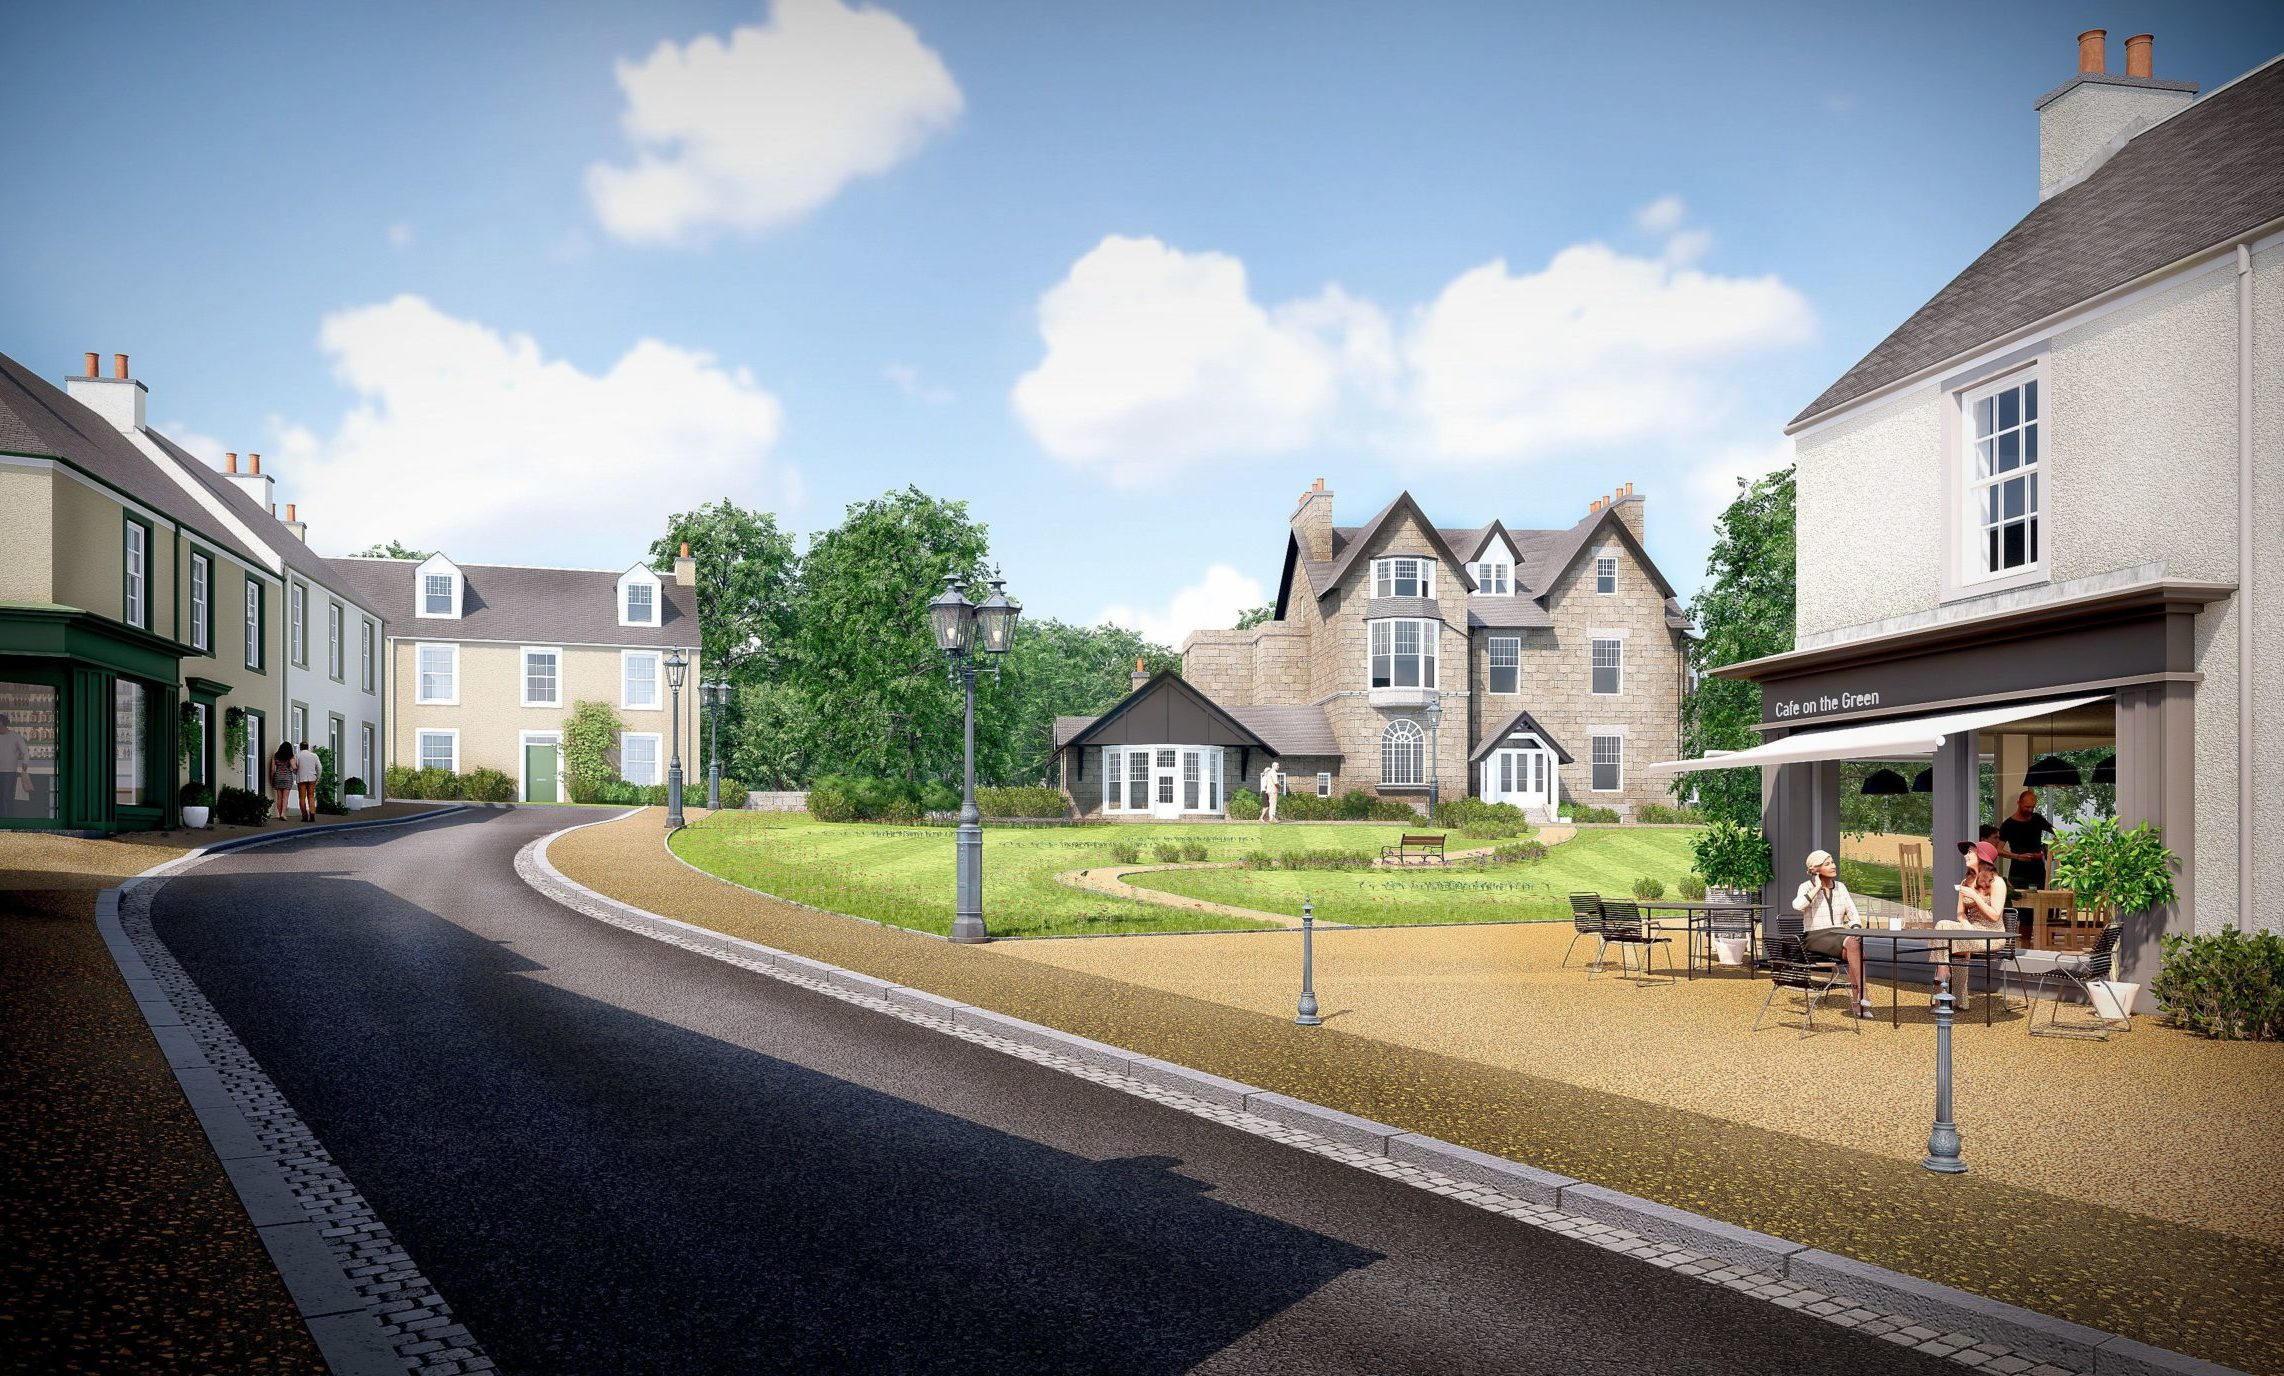 An artist's impression of a planned retirement village at Binghill House in Milltimber.